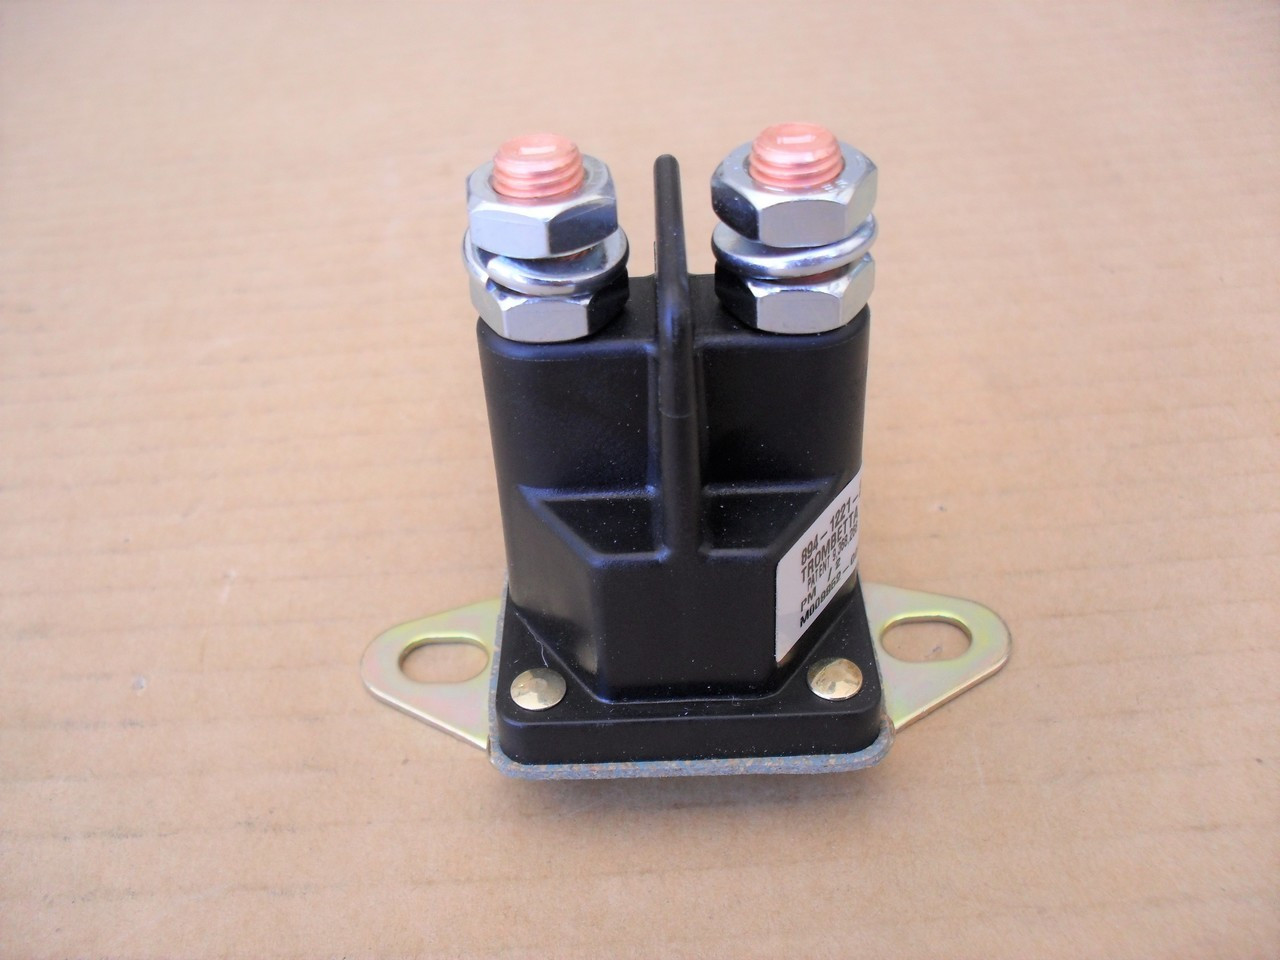 Everest Parts Supplies New Starter Solenoid Compatible with Simplicity OEM 1671993 1686981YP 1685290 1686981